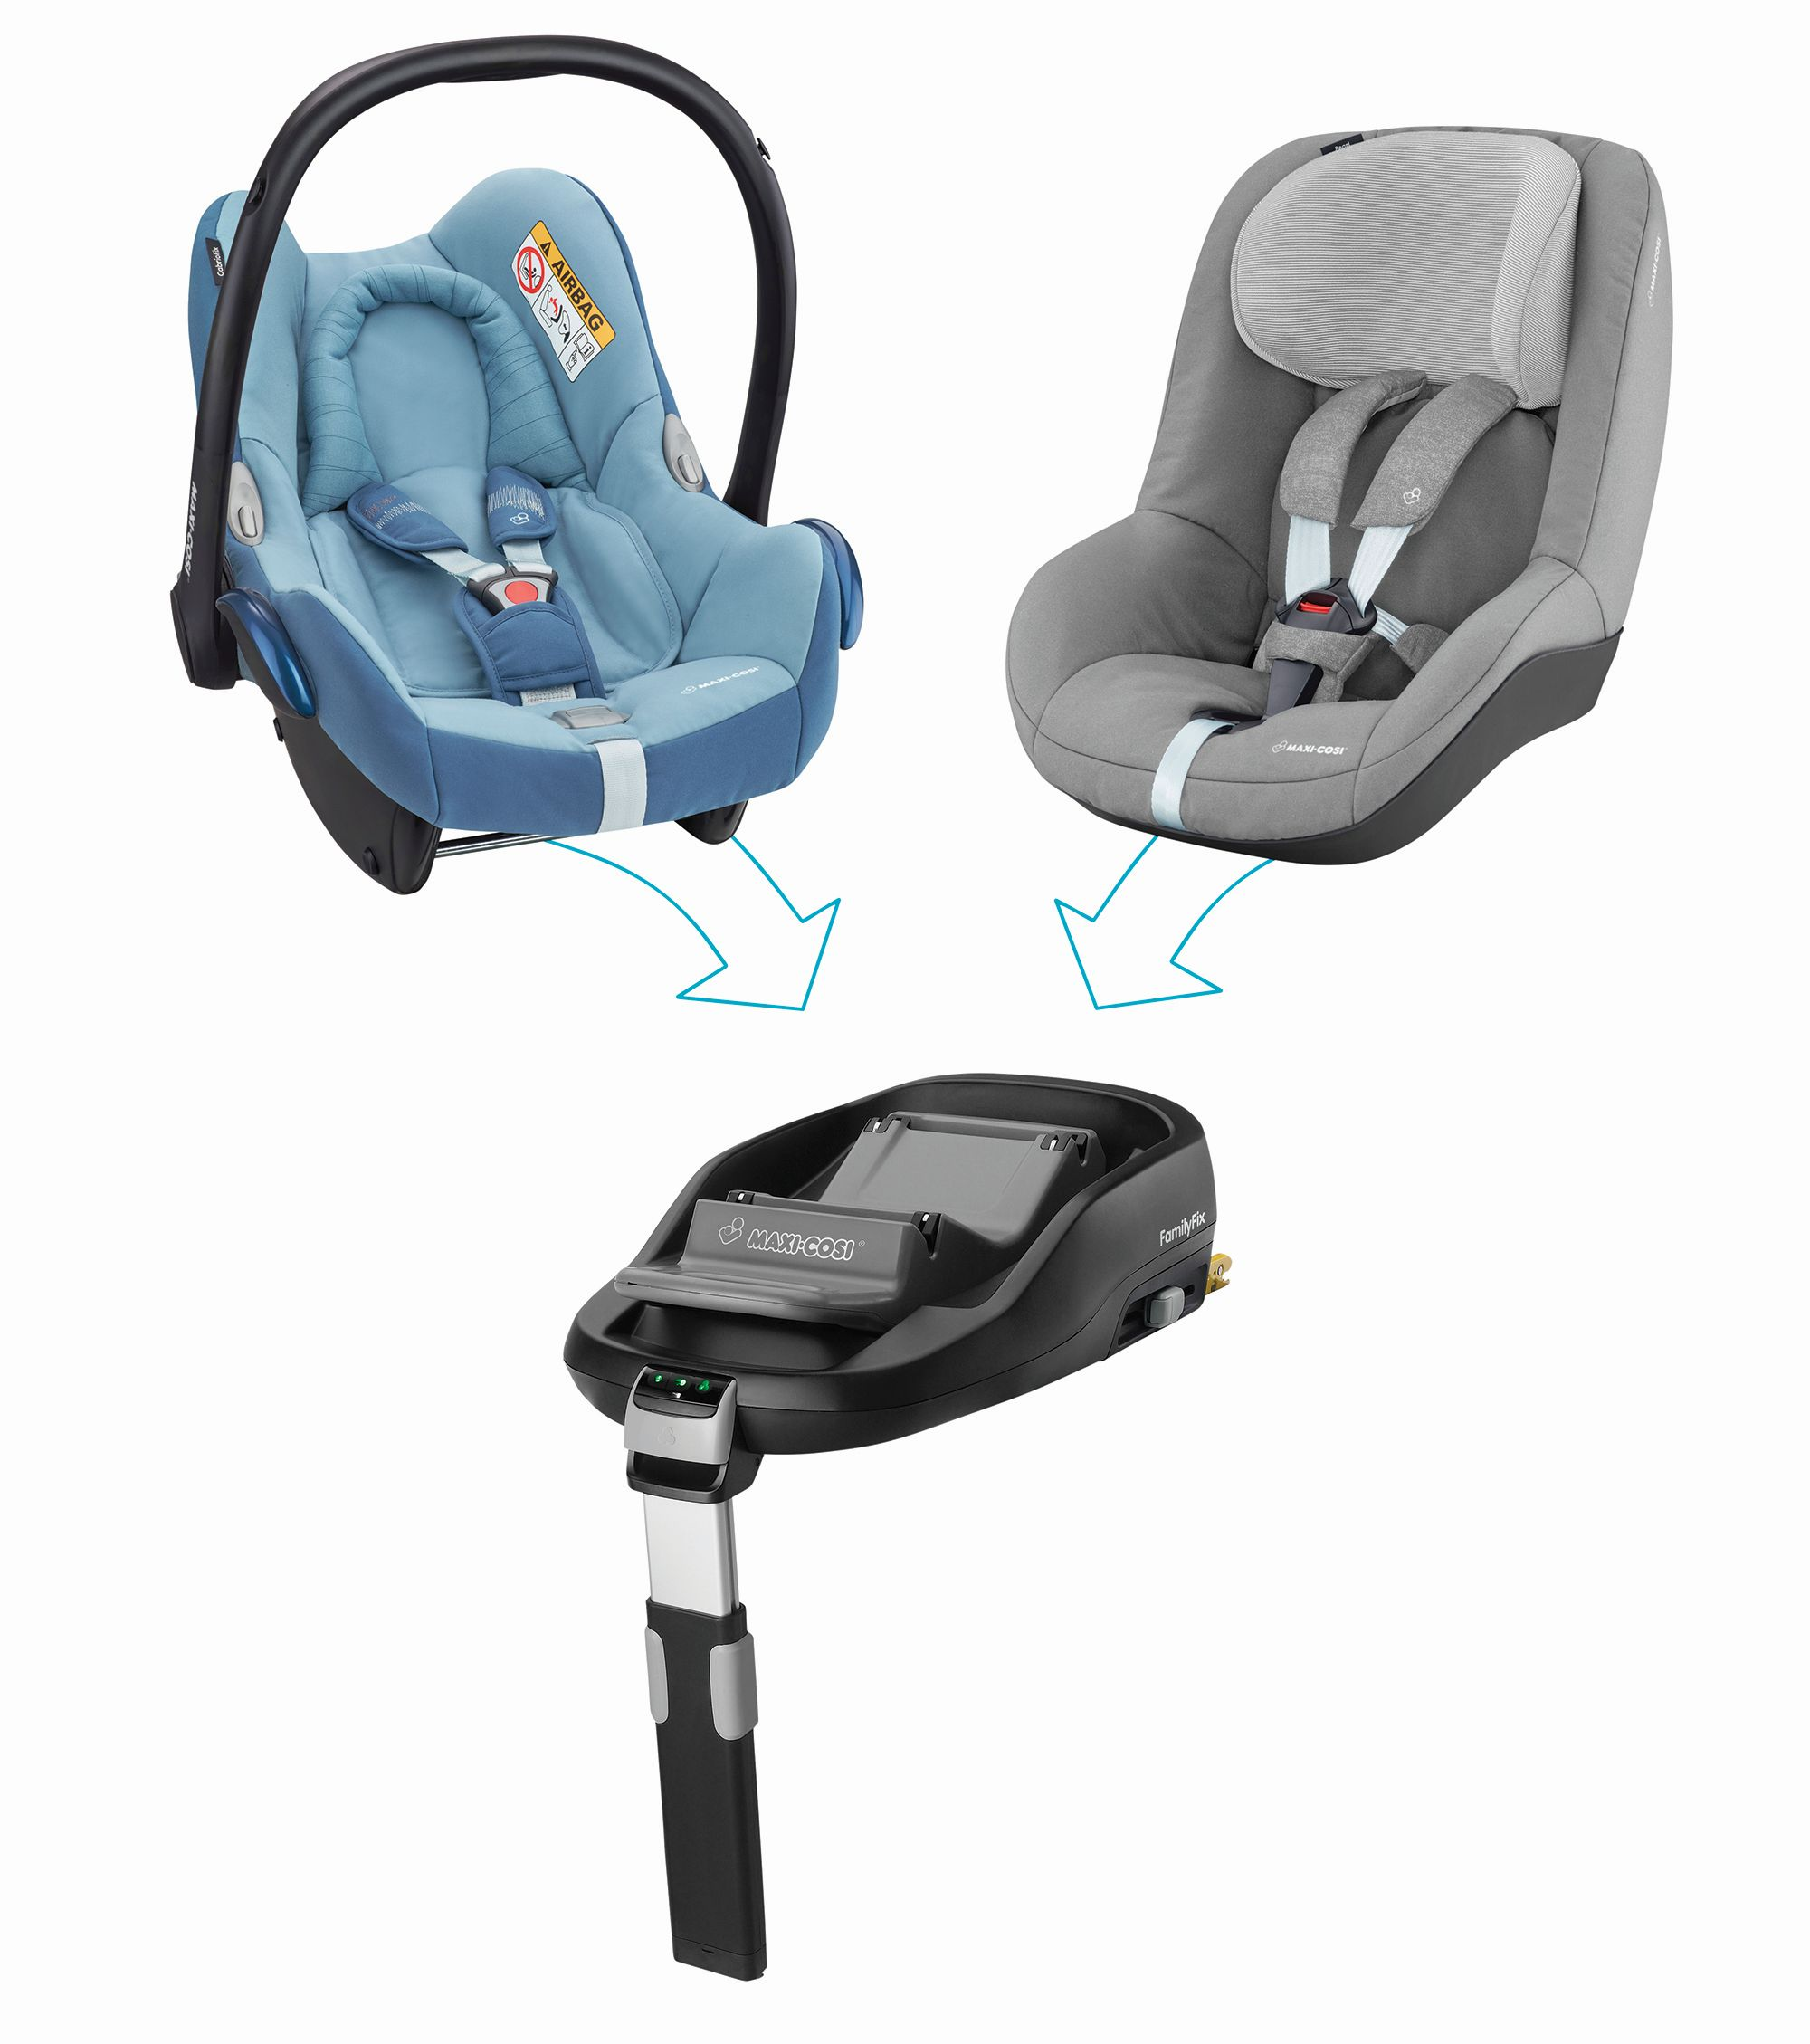 maxi cosi infant car seat cabriofix 2018 frequency blue buy at kidsroom car seats. Black Bedroom Furniture Sets. Home Design Ideas